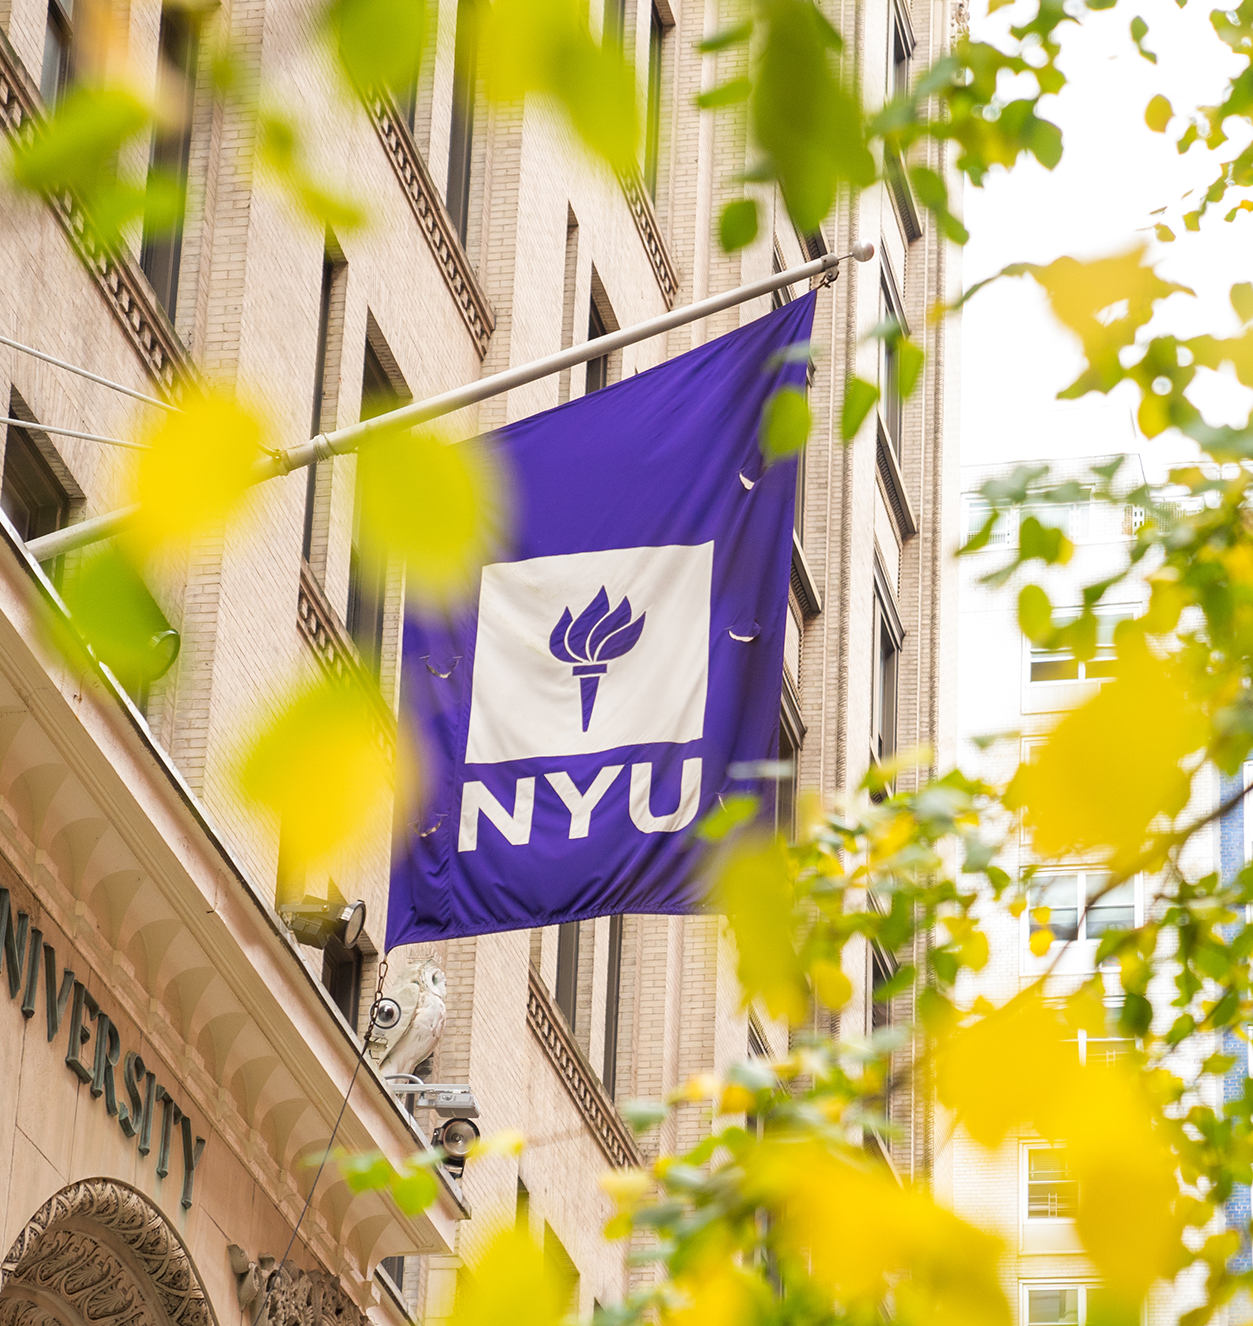 nyu flag outside with tree branches